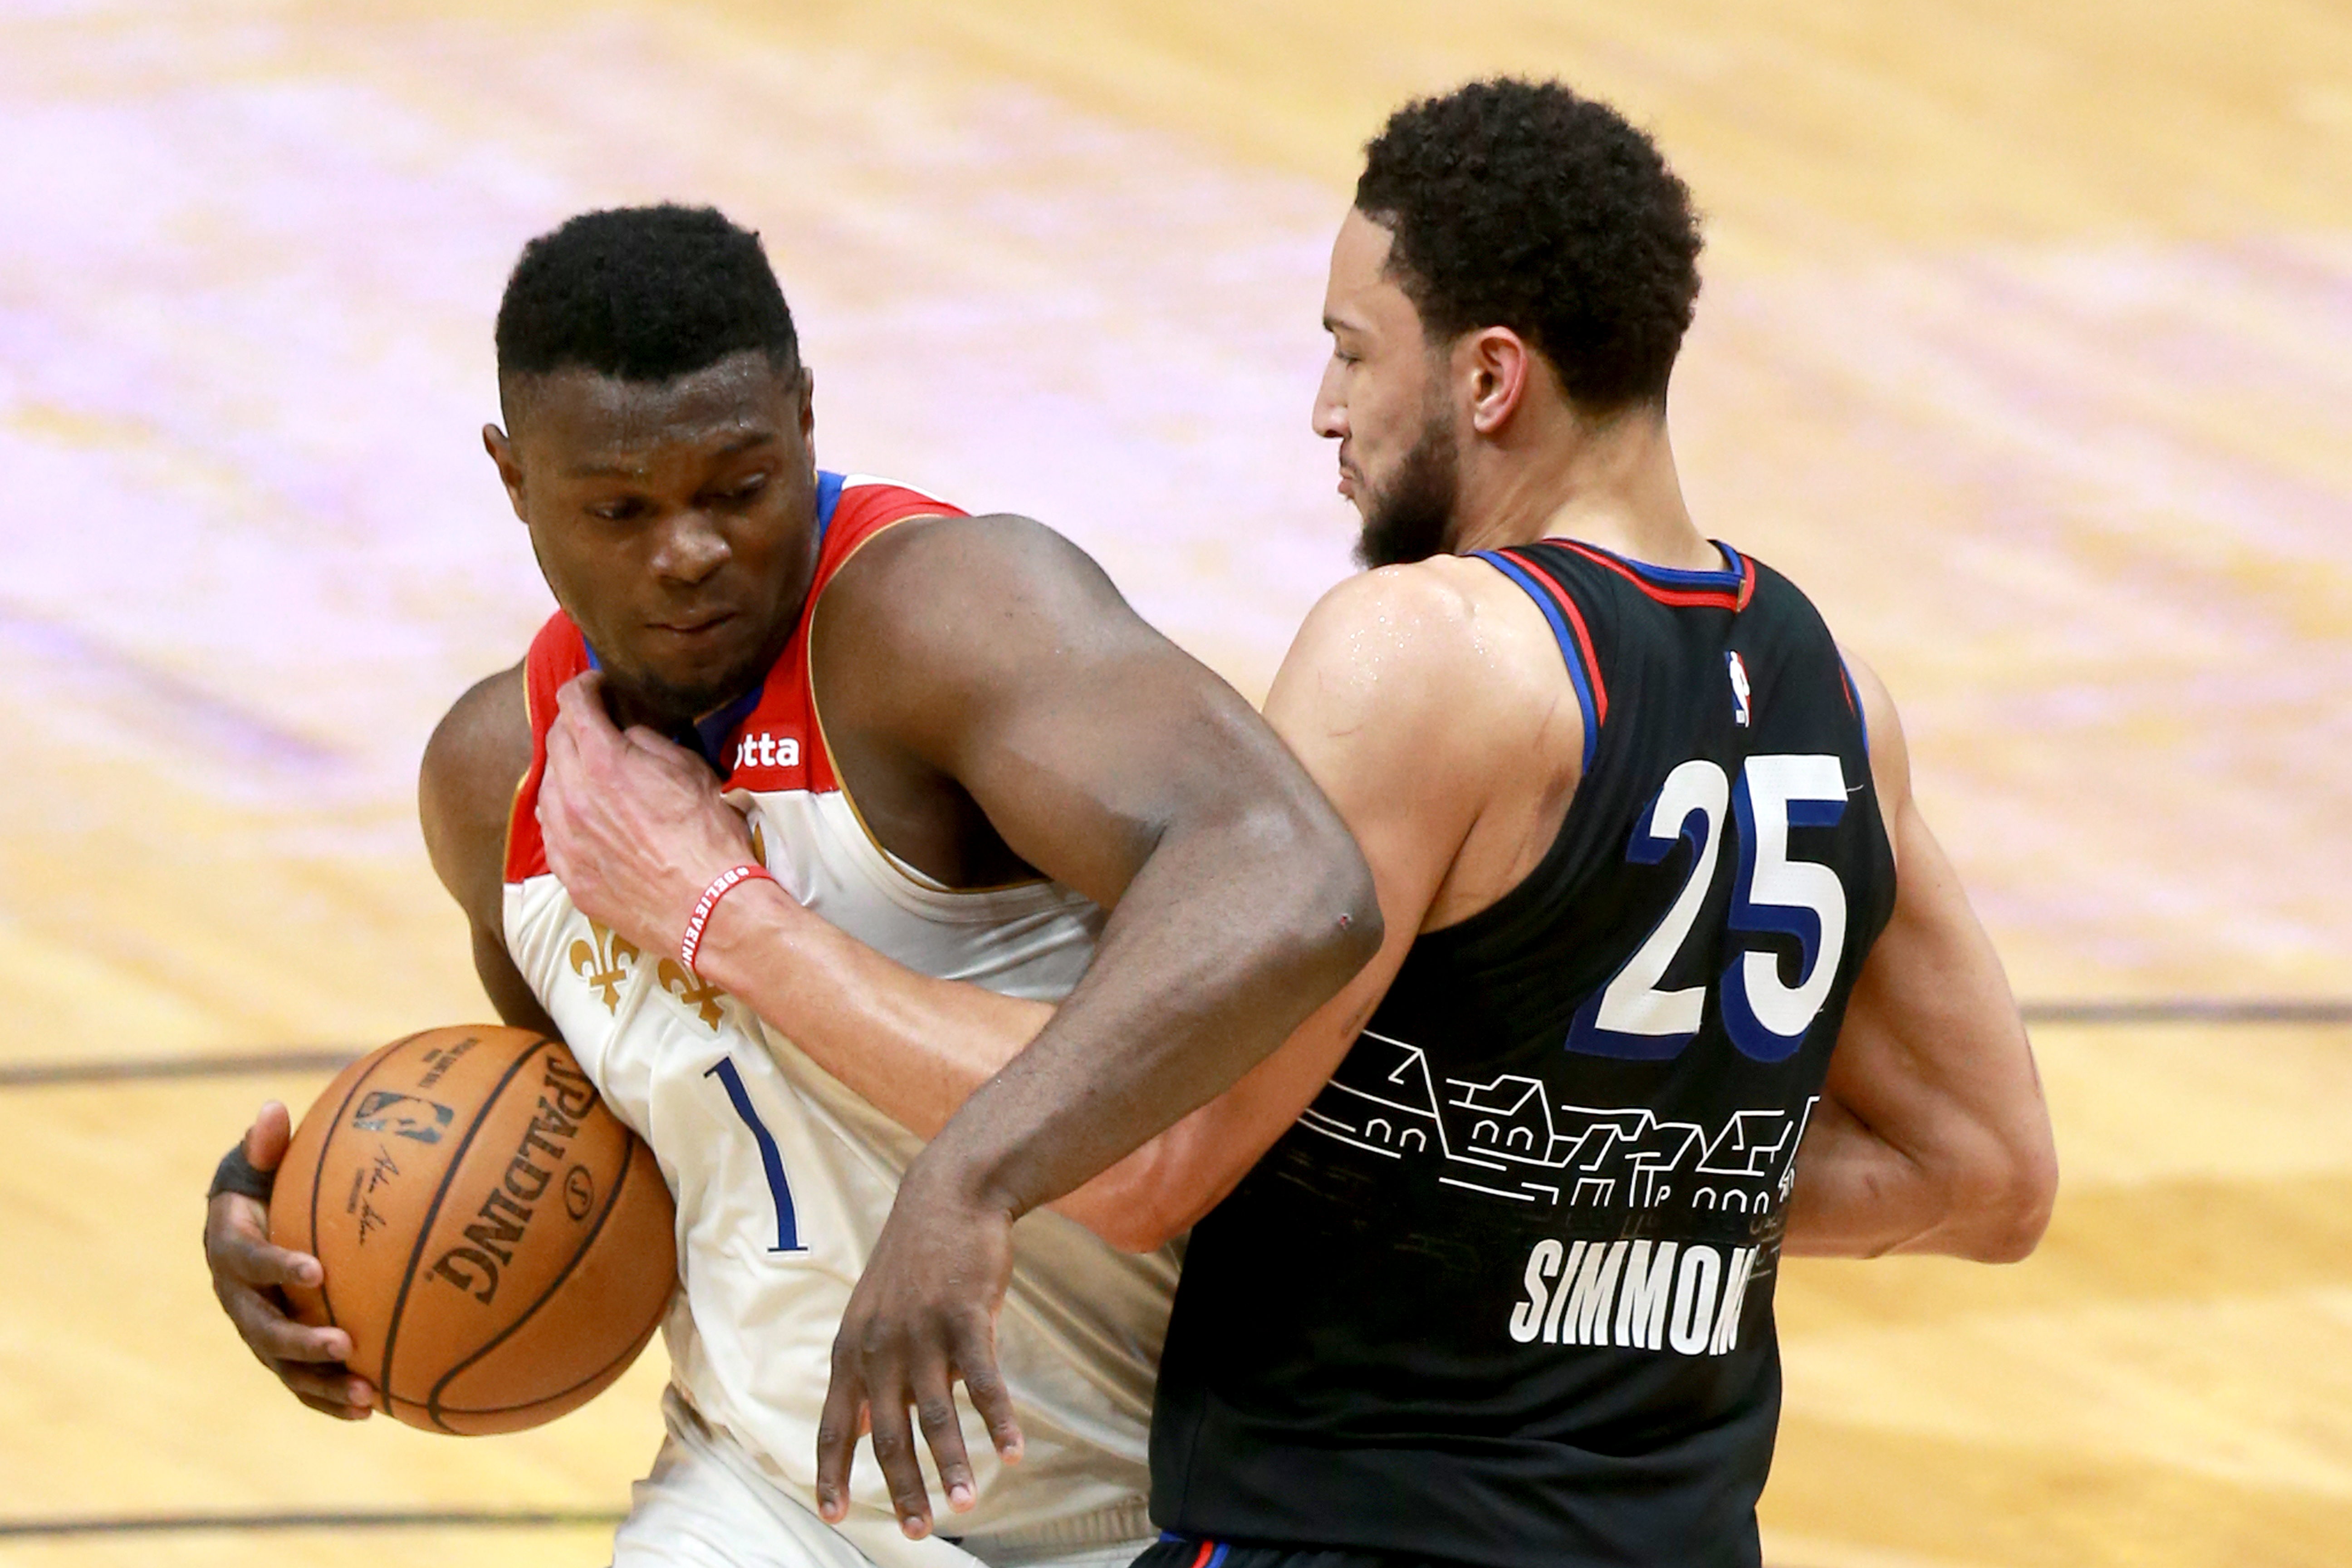 Zion Williamson Was Injured Because of 'Egregious and Horrific' Mistakes by the NBA According to a New Orleans Pelicans Exec